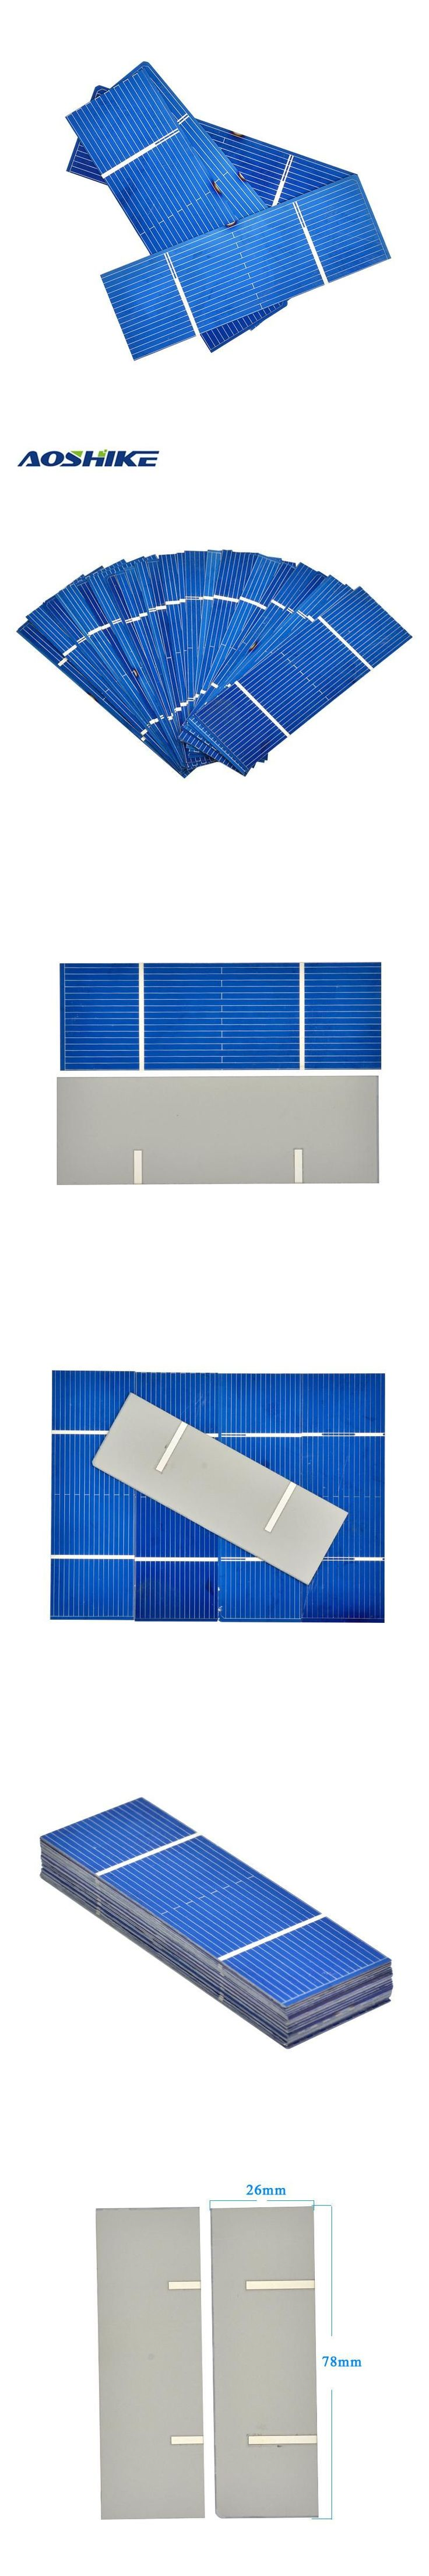 Aoshike 50Pcs Solar Panel Solar Cell 0.5V 0.35W Color Crystal Module DIY Solar Battery Charger 78x26mm Power Bank China